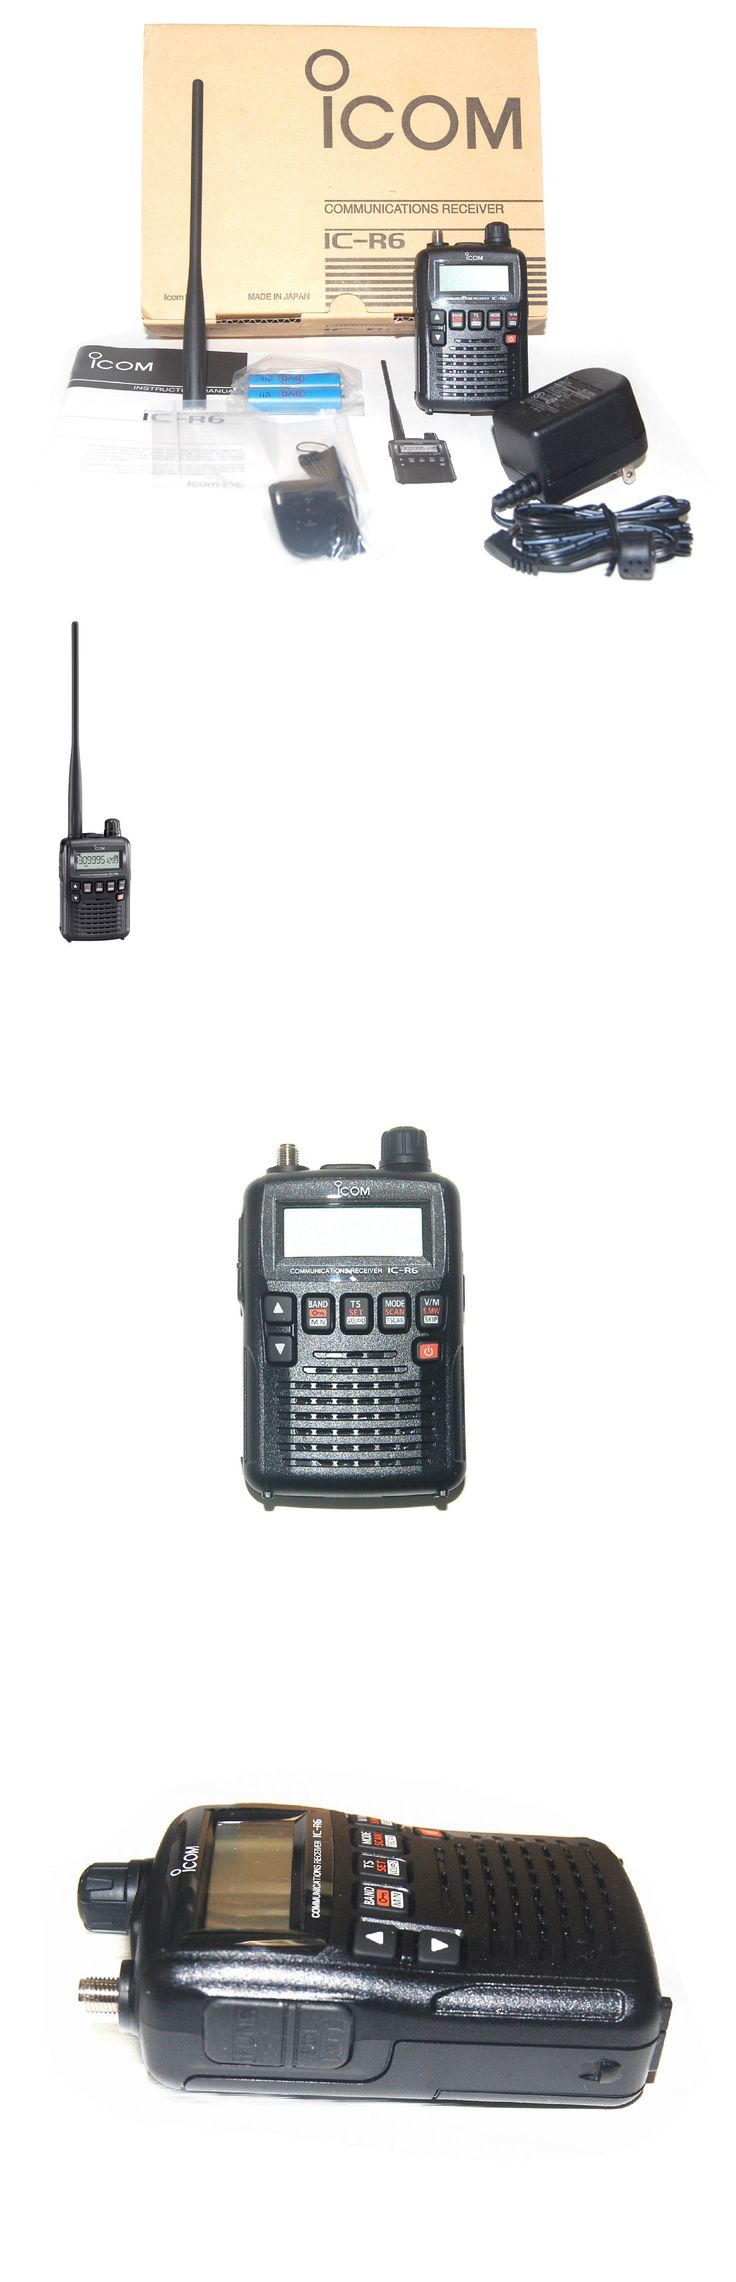 Ham Radio Receivers: New Icom Ic-R6-20 Ipx2 Mil-Std-810 Exp Wide Band Handheld Scanner Receiver Radio BUY IT NOW ONLY: $236.95